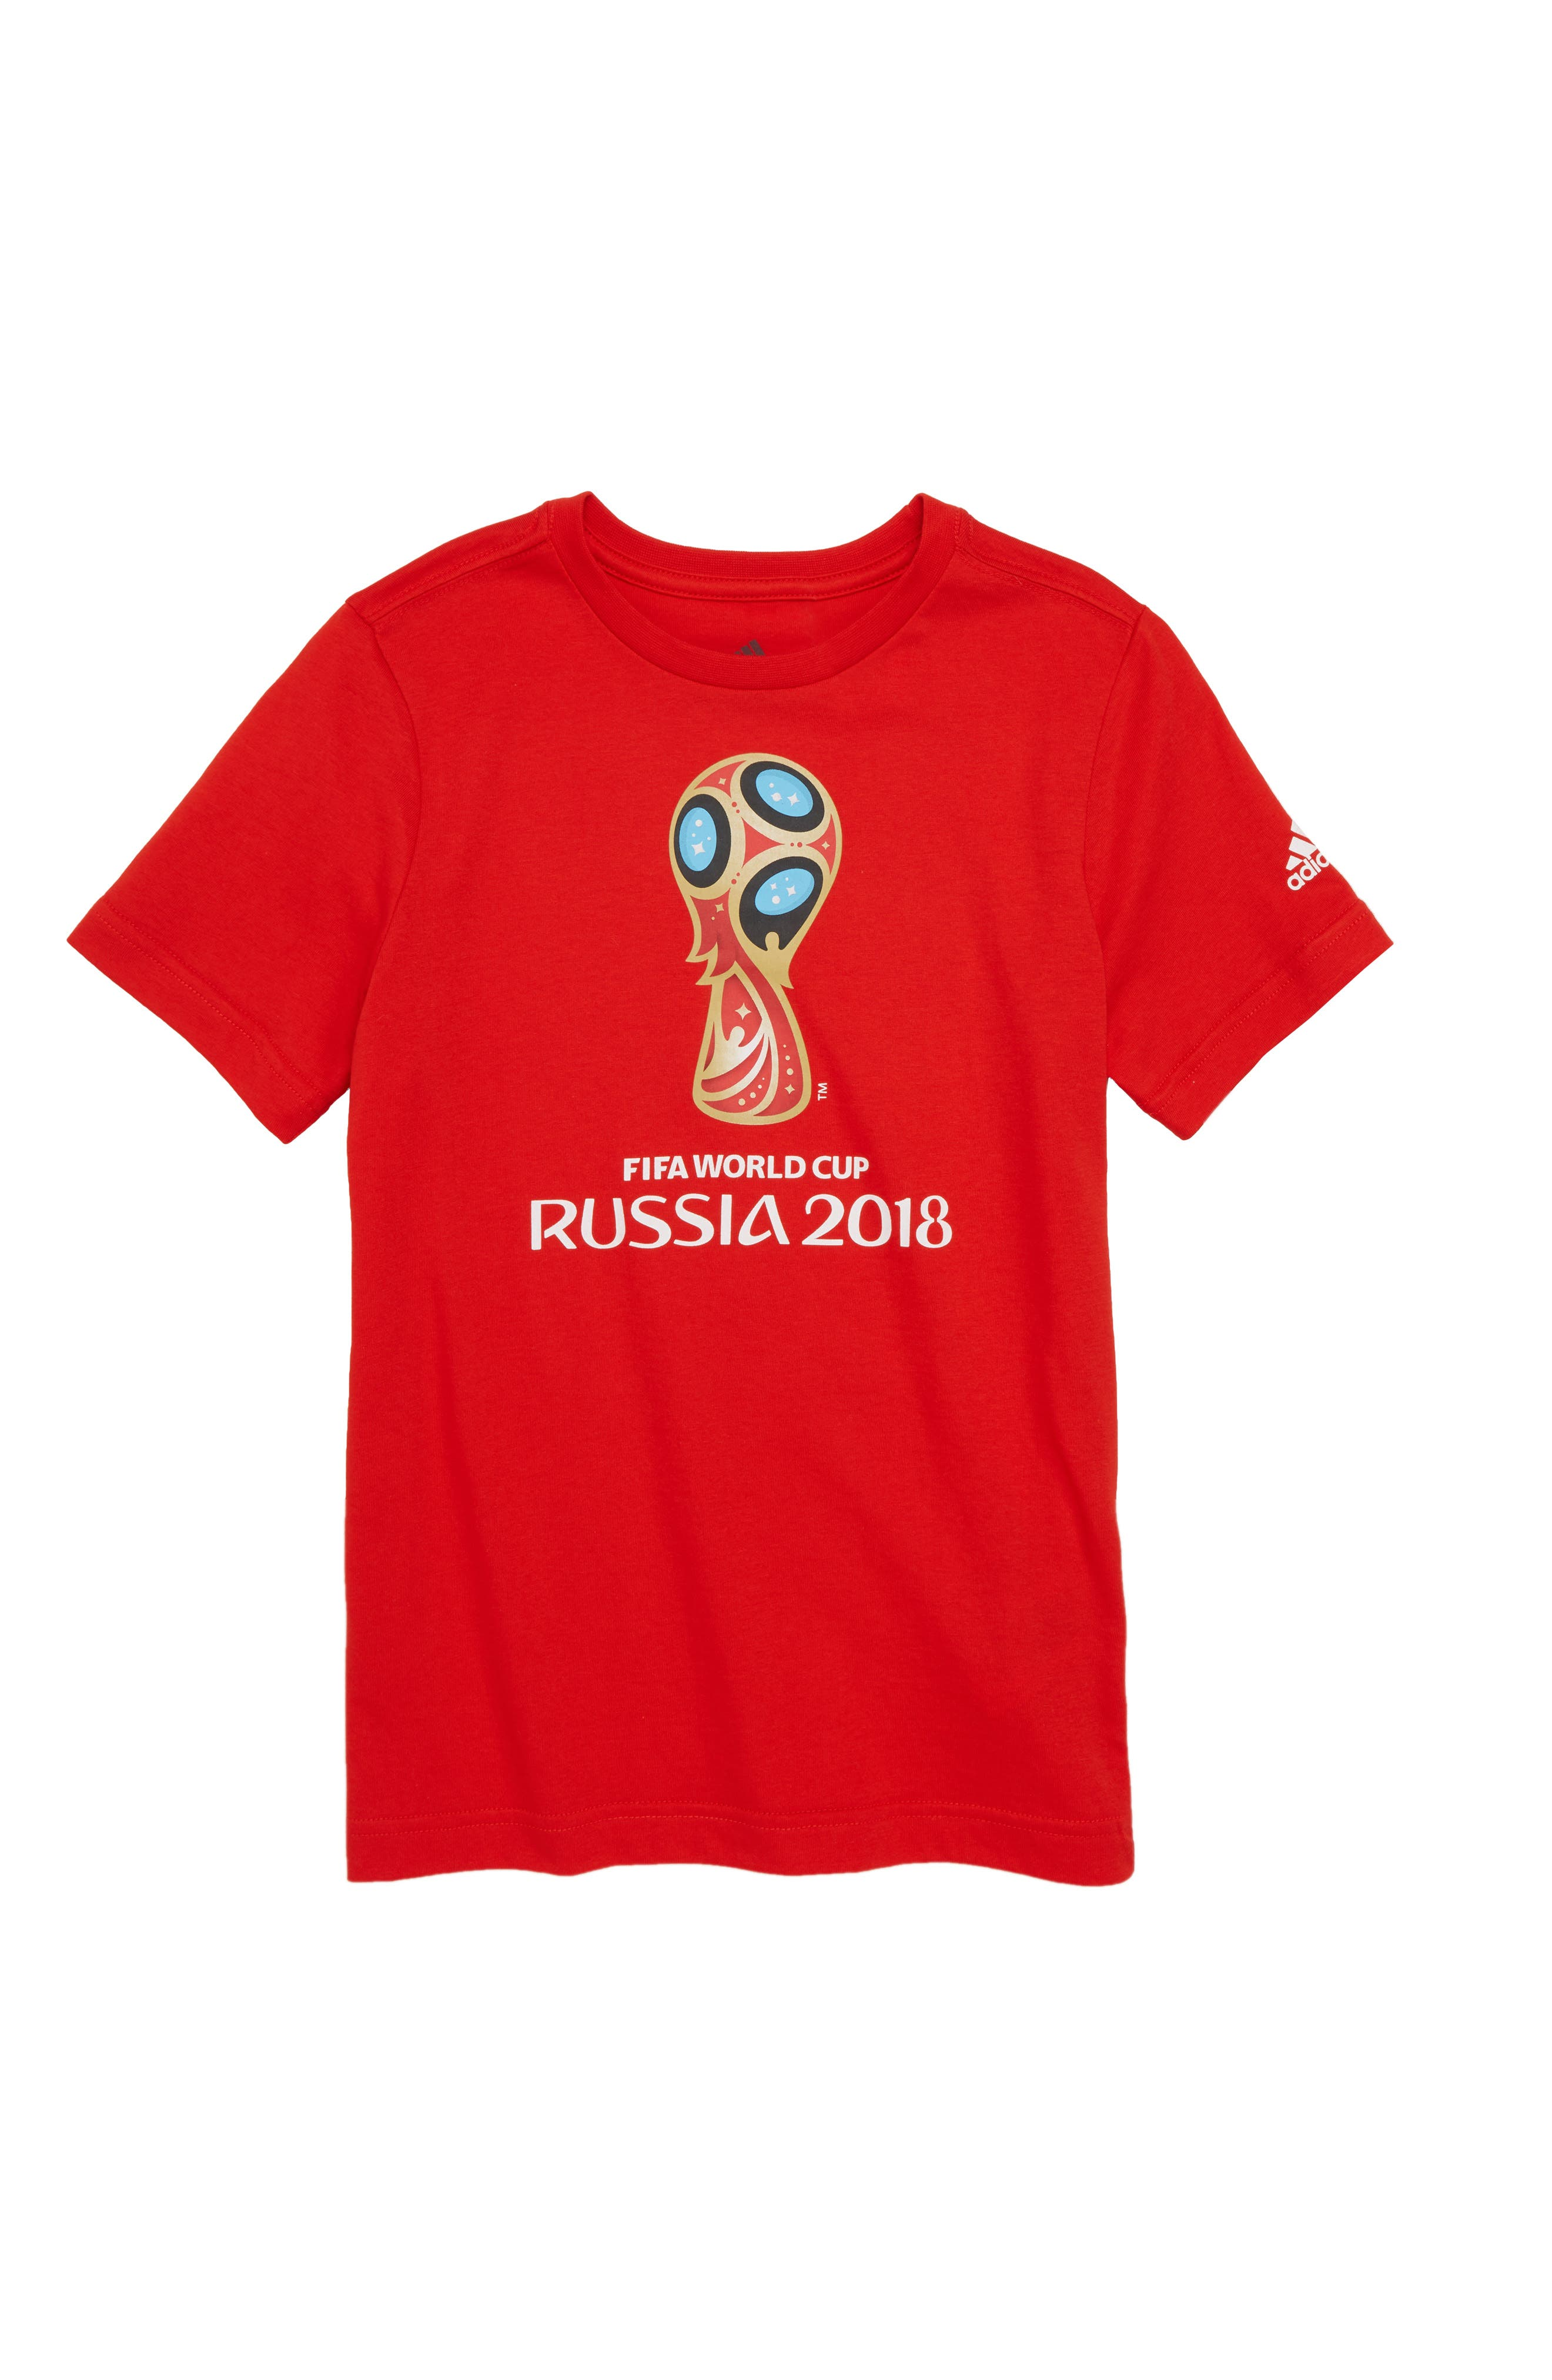 2018 FIFA World Cup Russia Soccer T-Shirt,                             Main thumbnail 1, color,                             Red